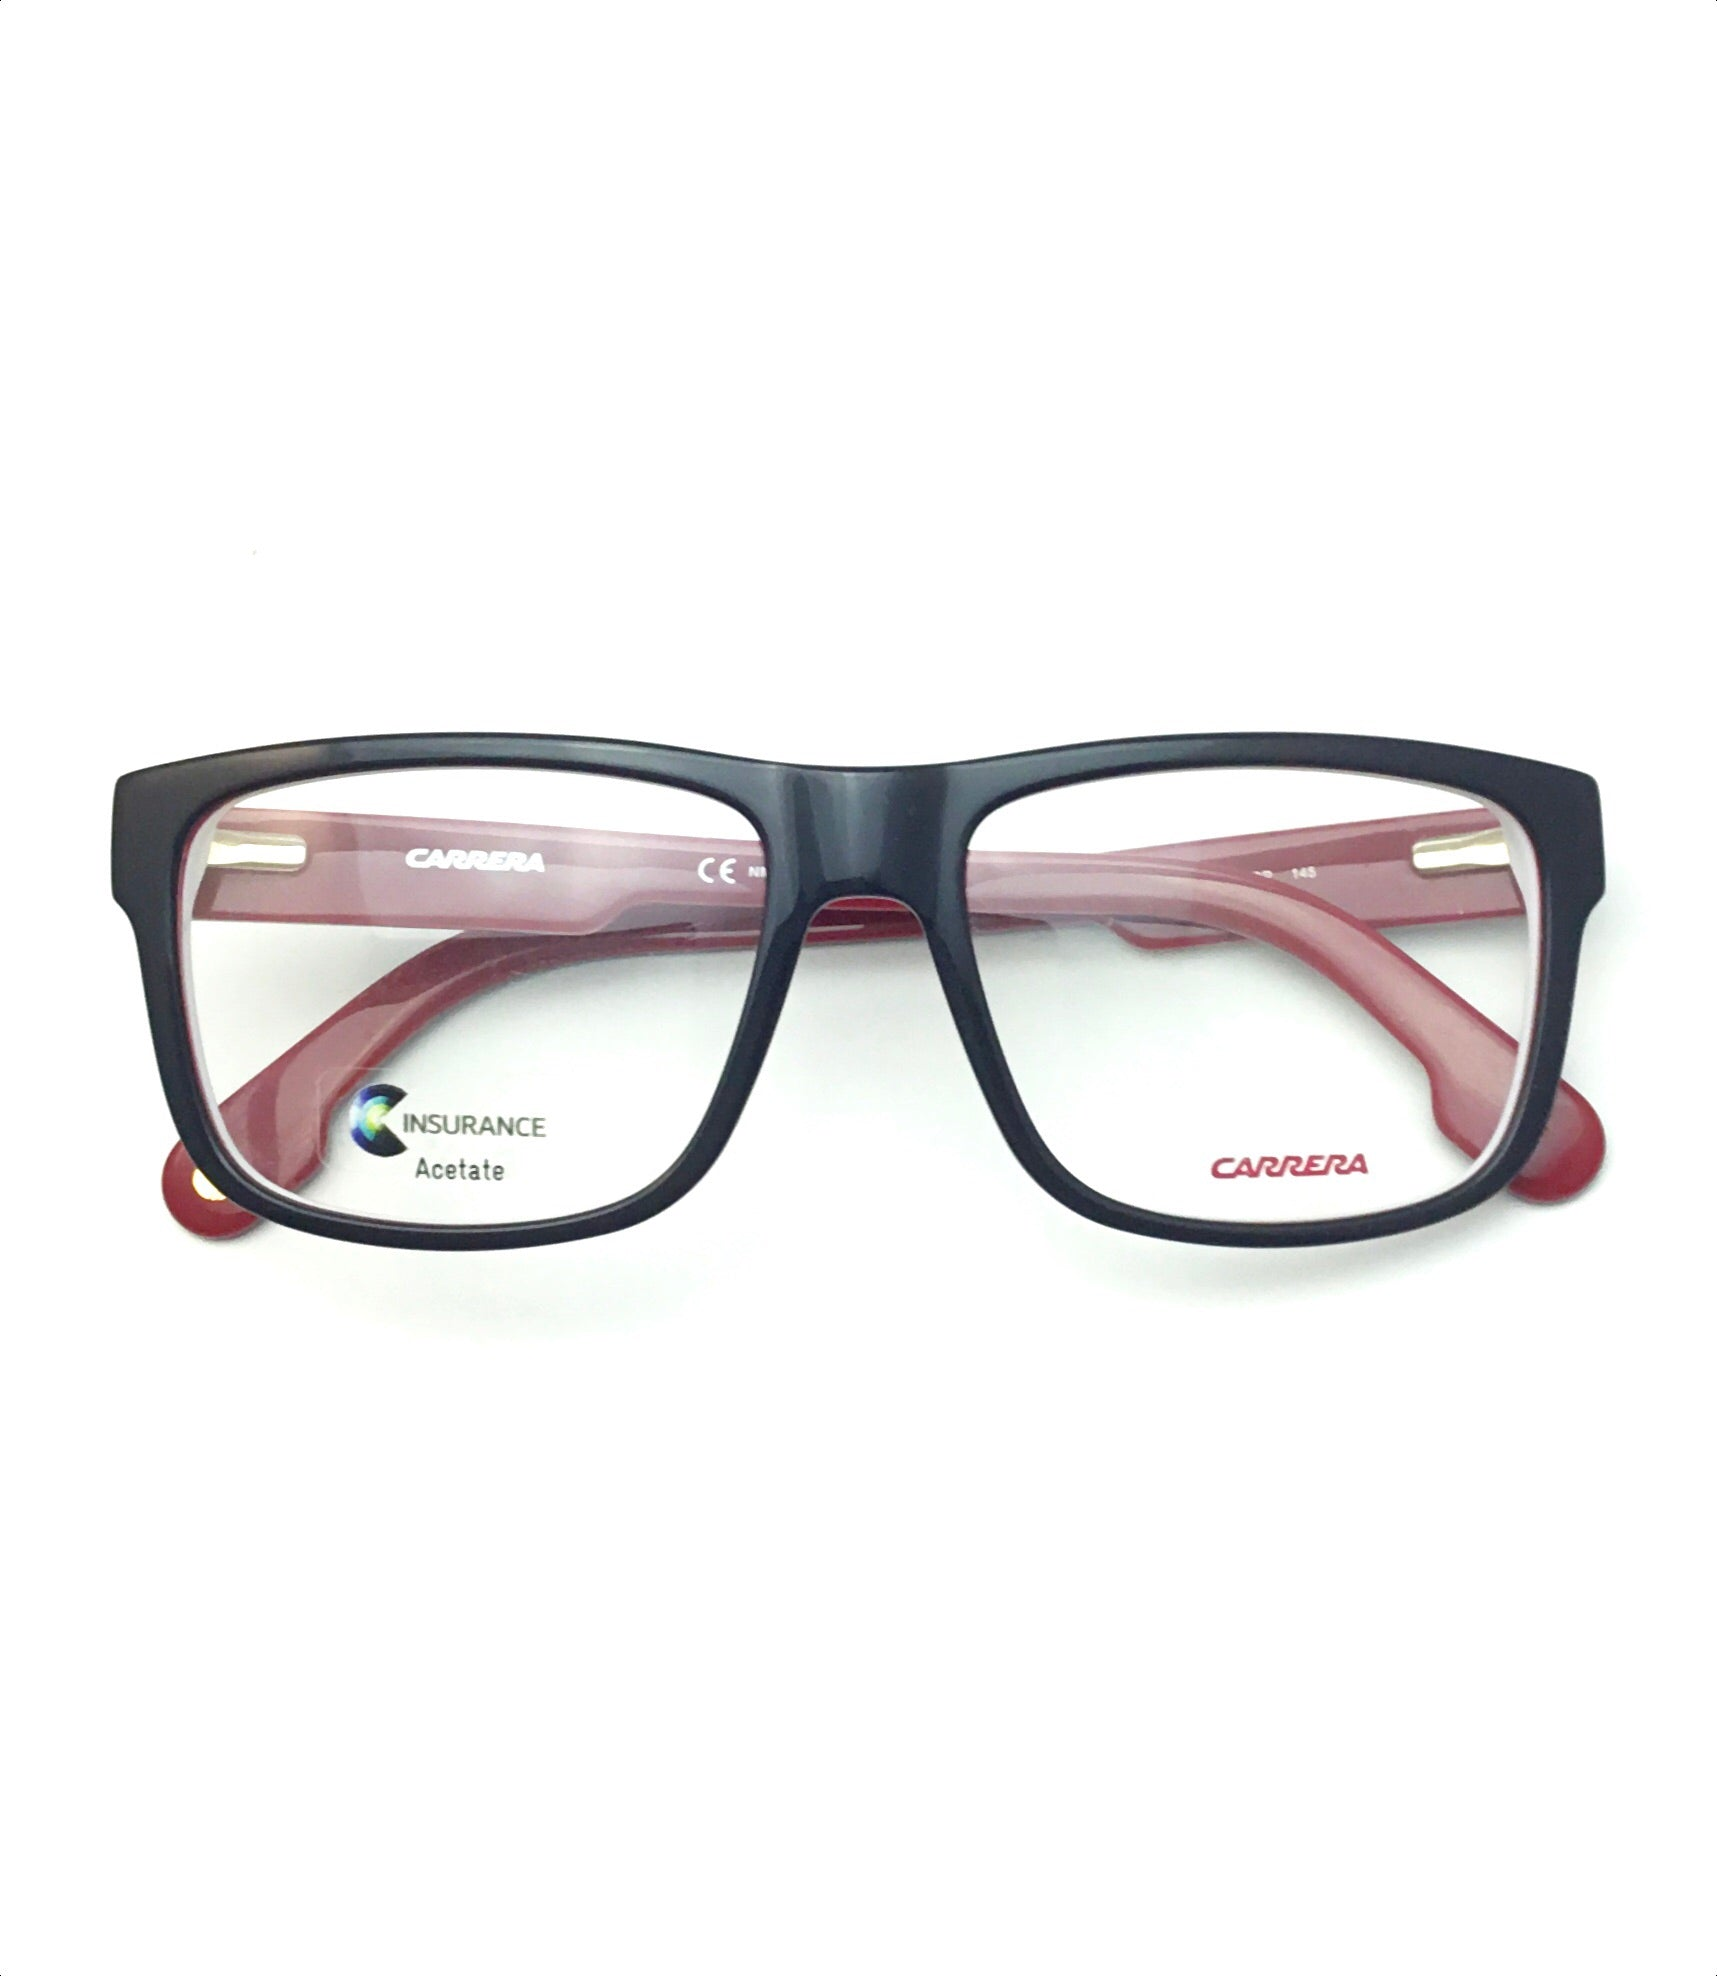 Carrera Glasses $199 LARGE K8